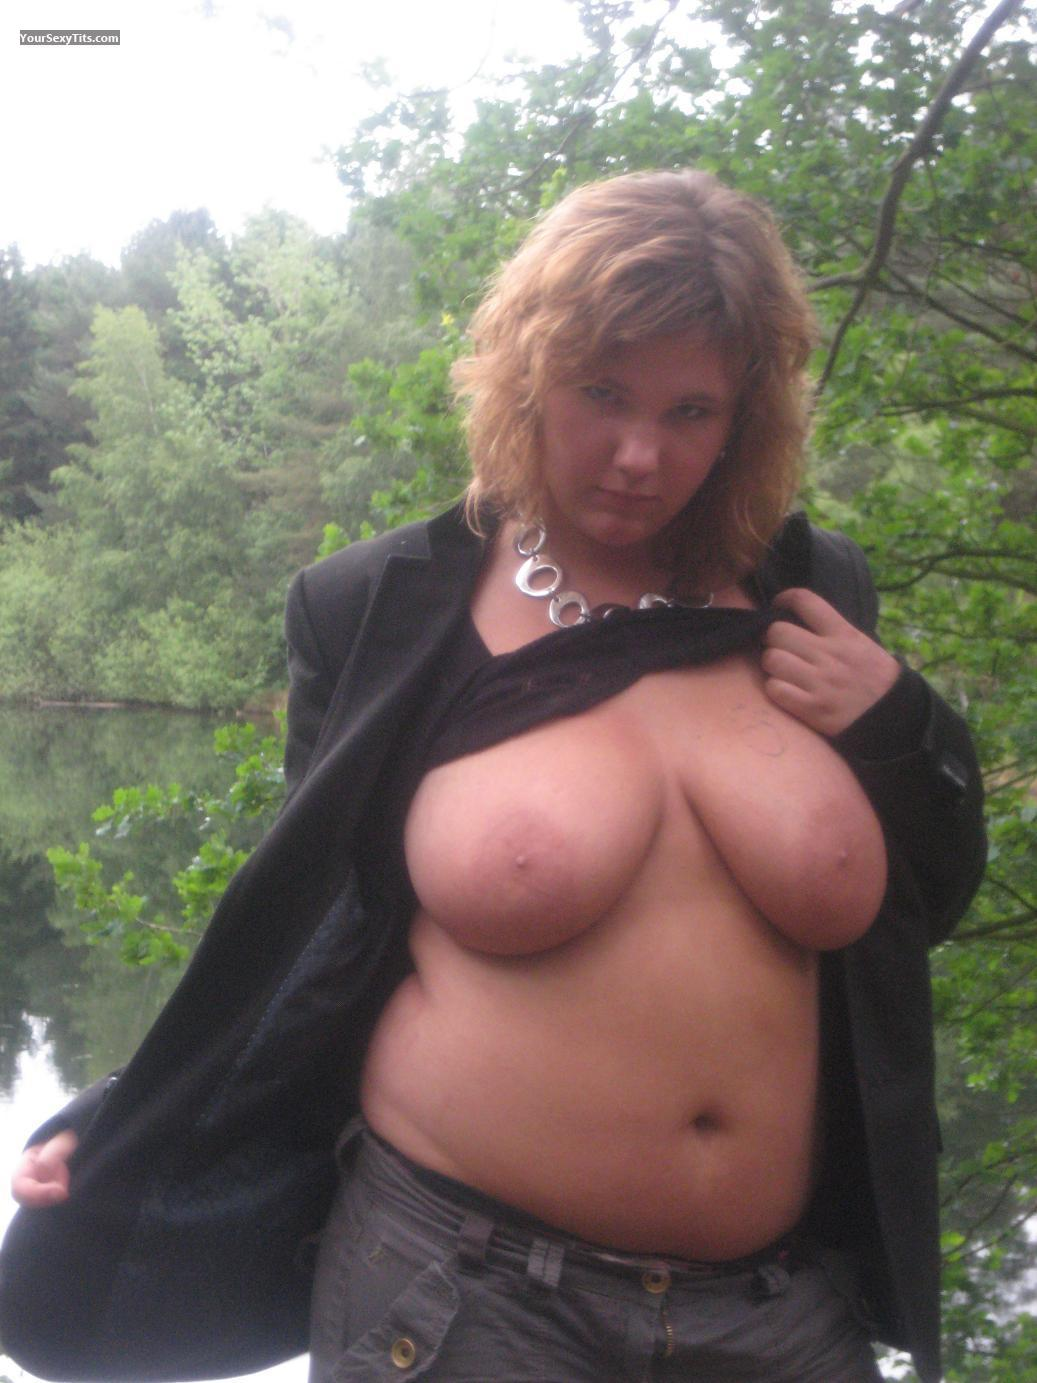 Tit Flash: Big Tits - Topless Linda from Belgium